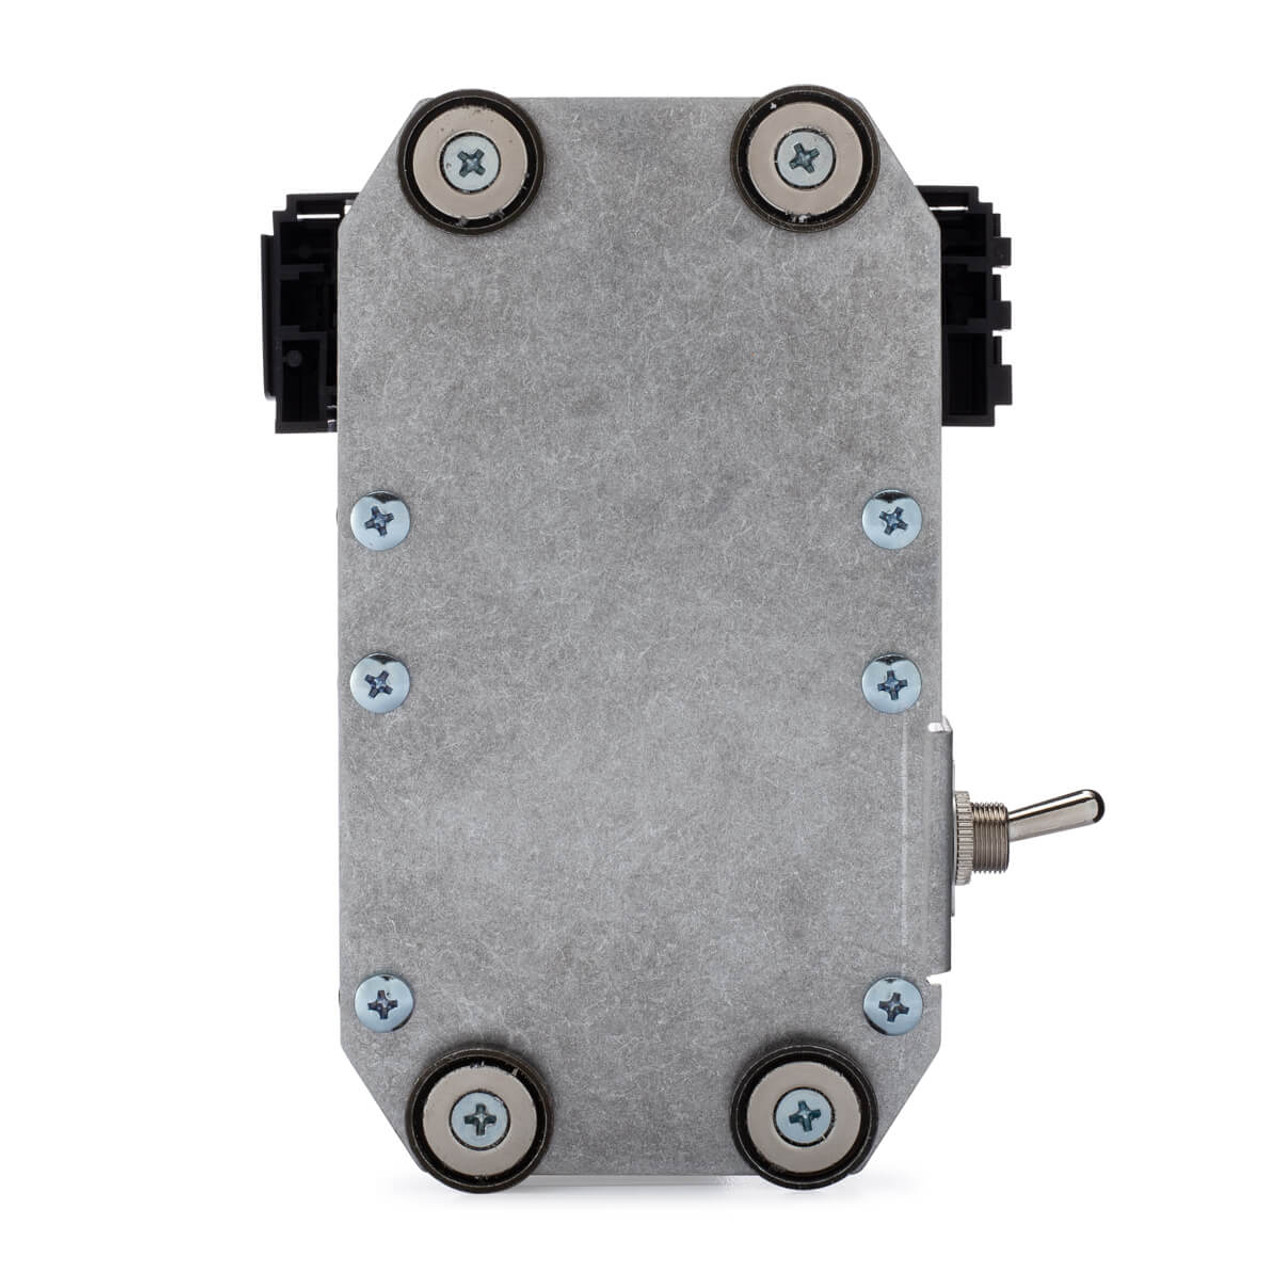 small resolution of fuse panel firewall magnetic mount kwikwire com electrify your ride wire harness magnets